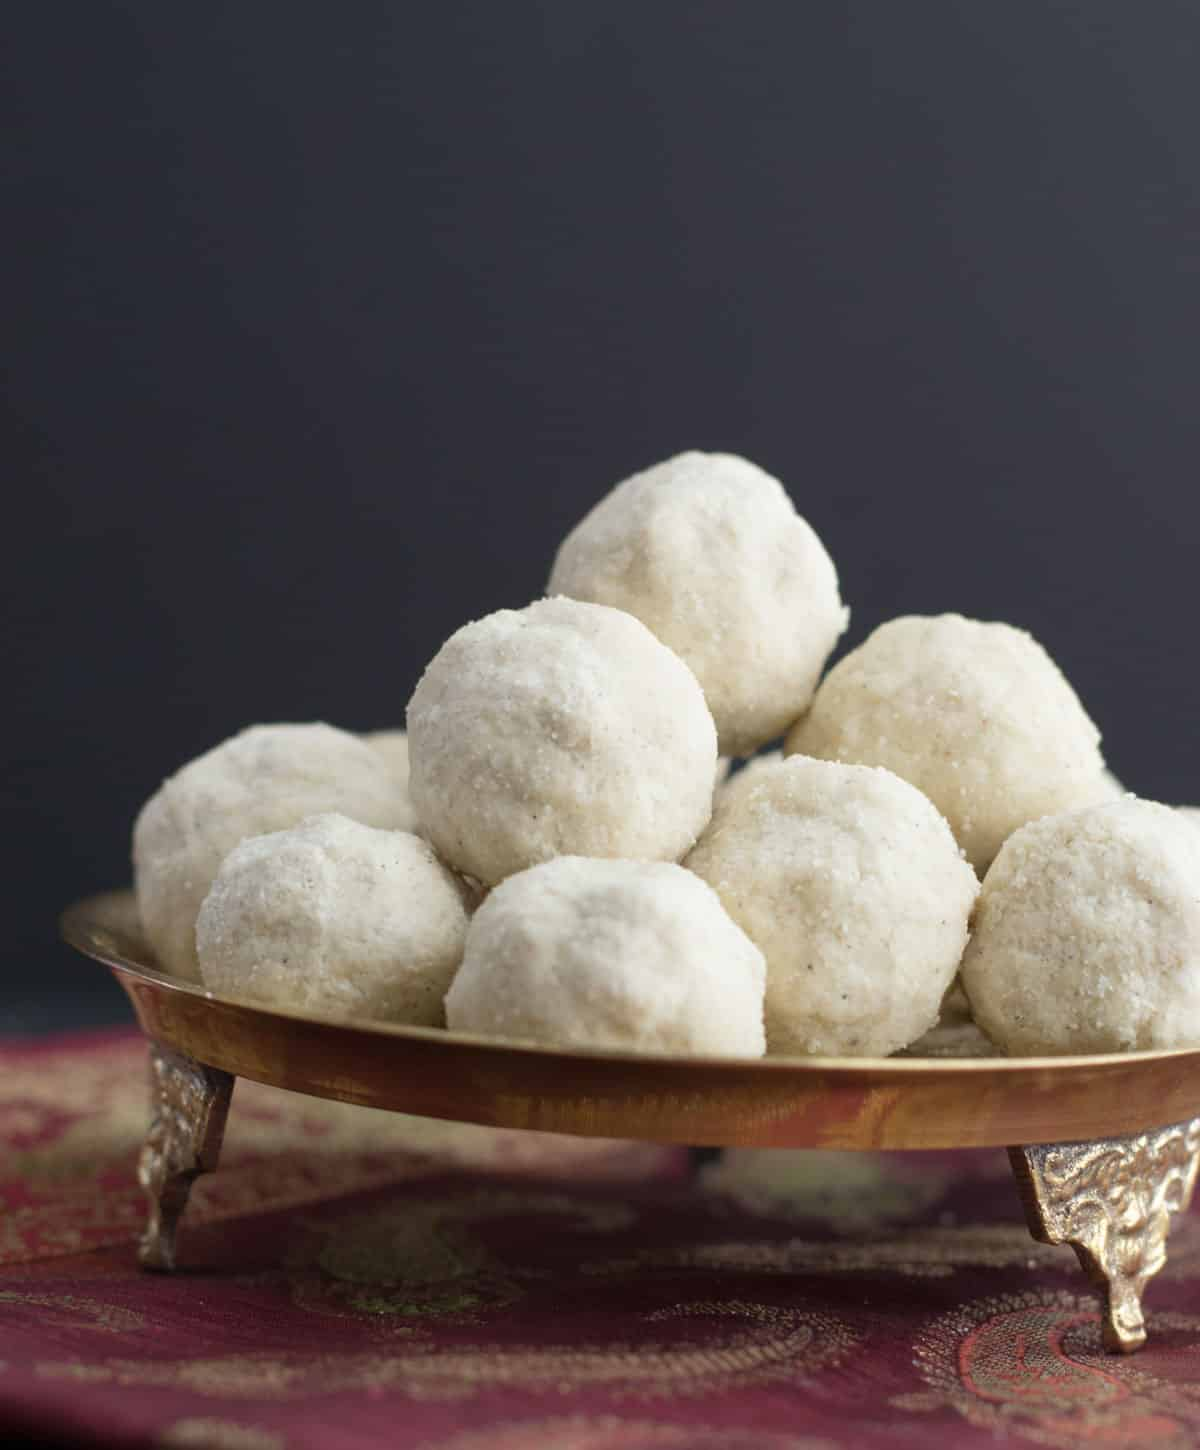 Follow this recipe to make crumbly, melt in the mouth Rava ladoos. (And the best part - you don't have to shape these into balls when it is piping hot!)